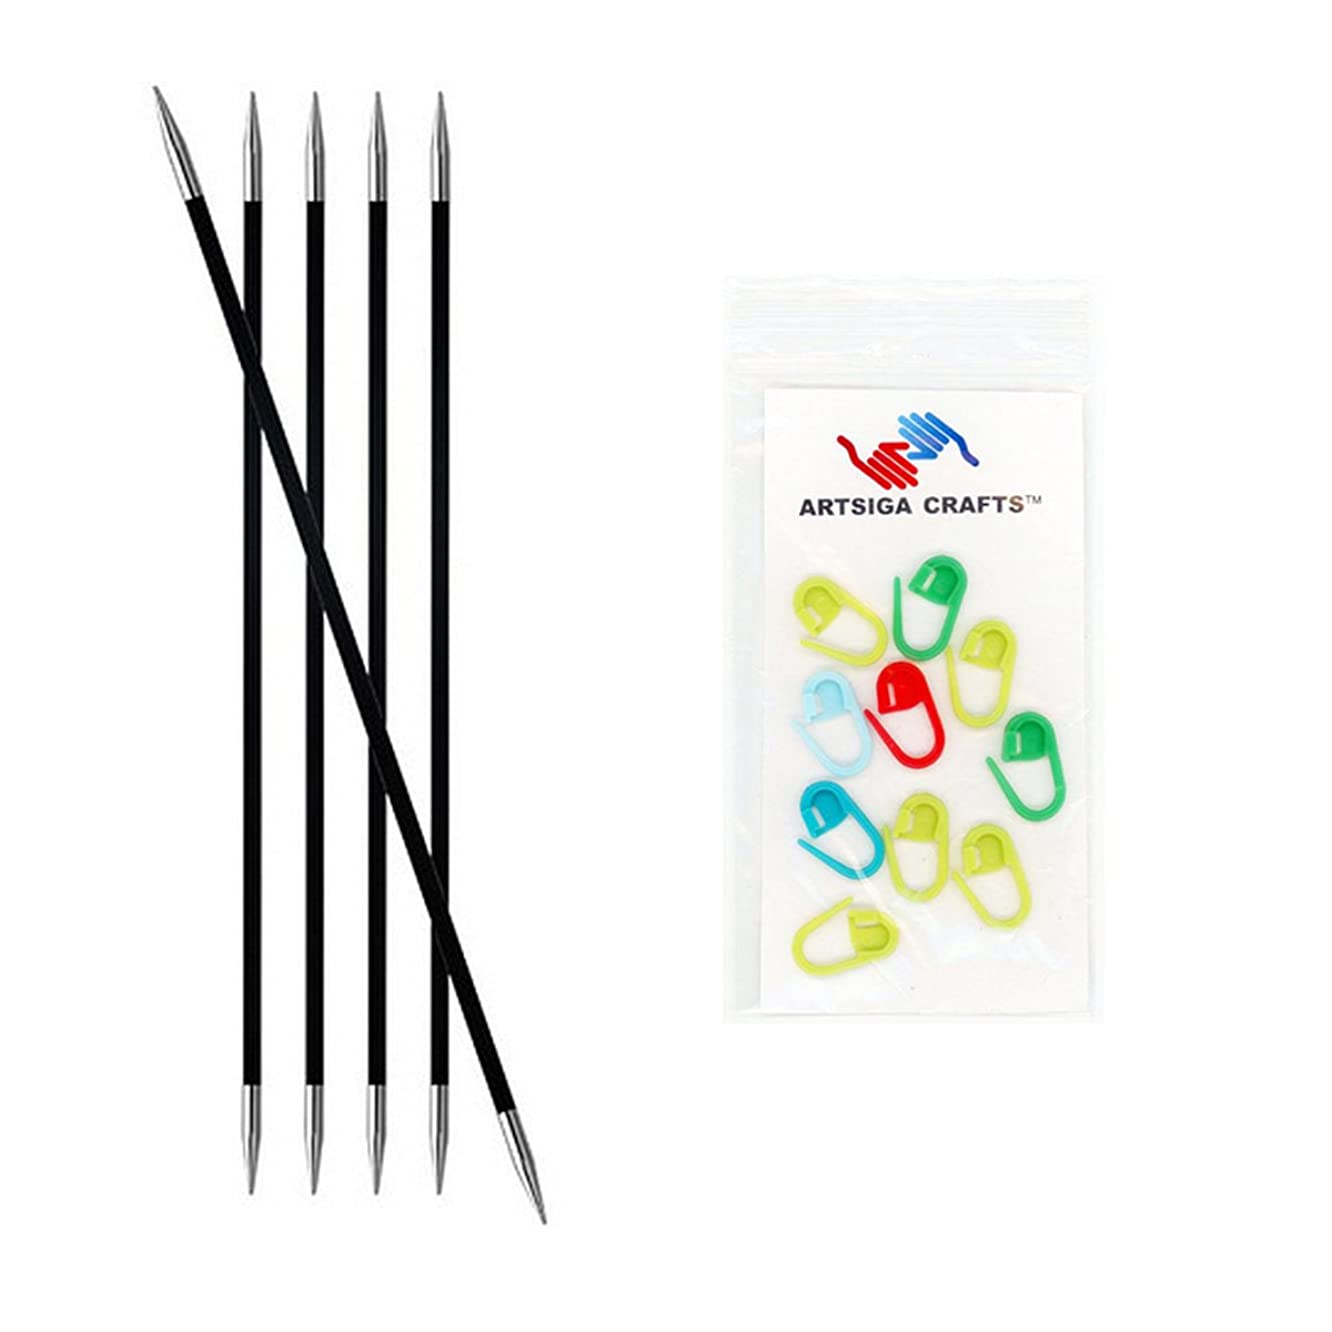 Knitter's Pride Karbonz Double Pointed 6-inch (15cm) Knitting Needles; Size US 00 (1.75mm) Bundle with 10 Artsiga Crafts Stitch Markers 110104